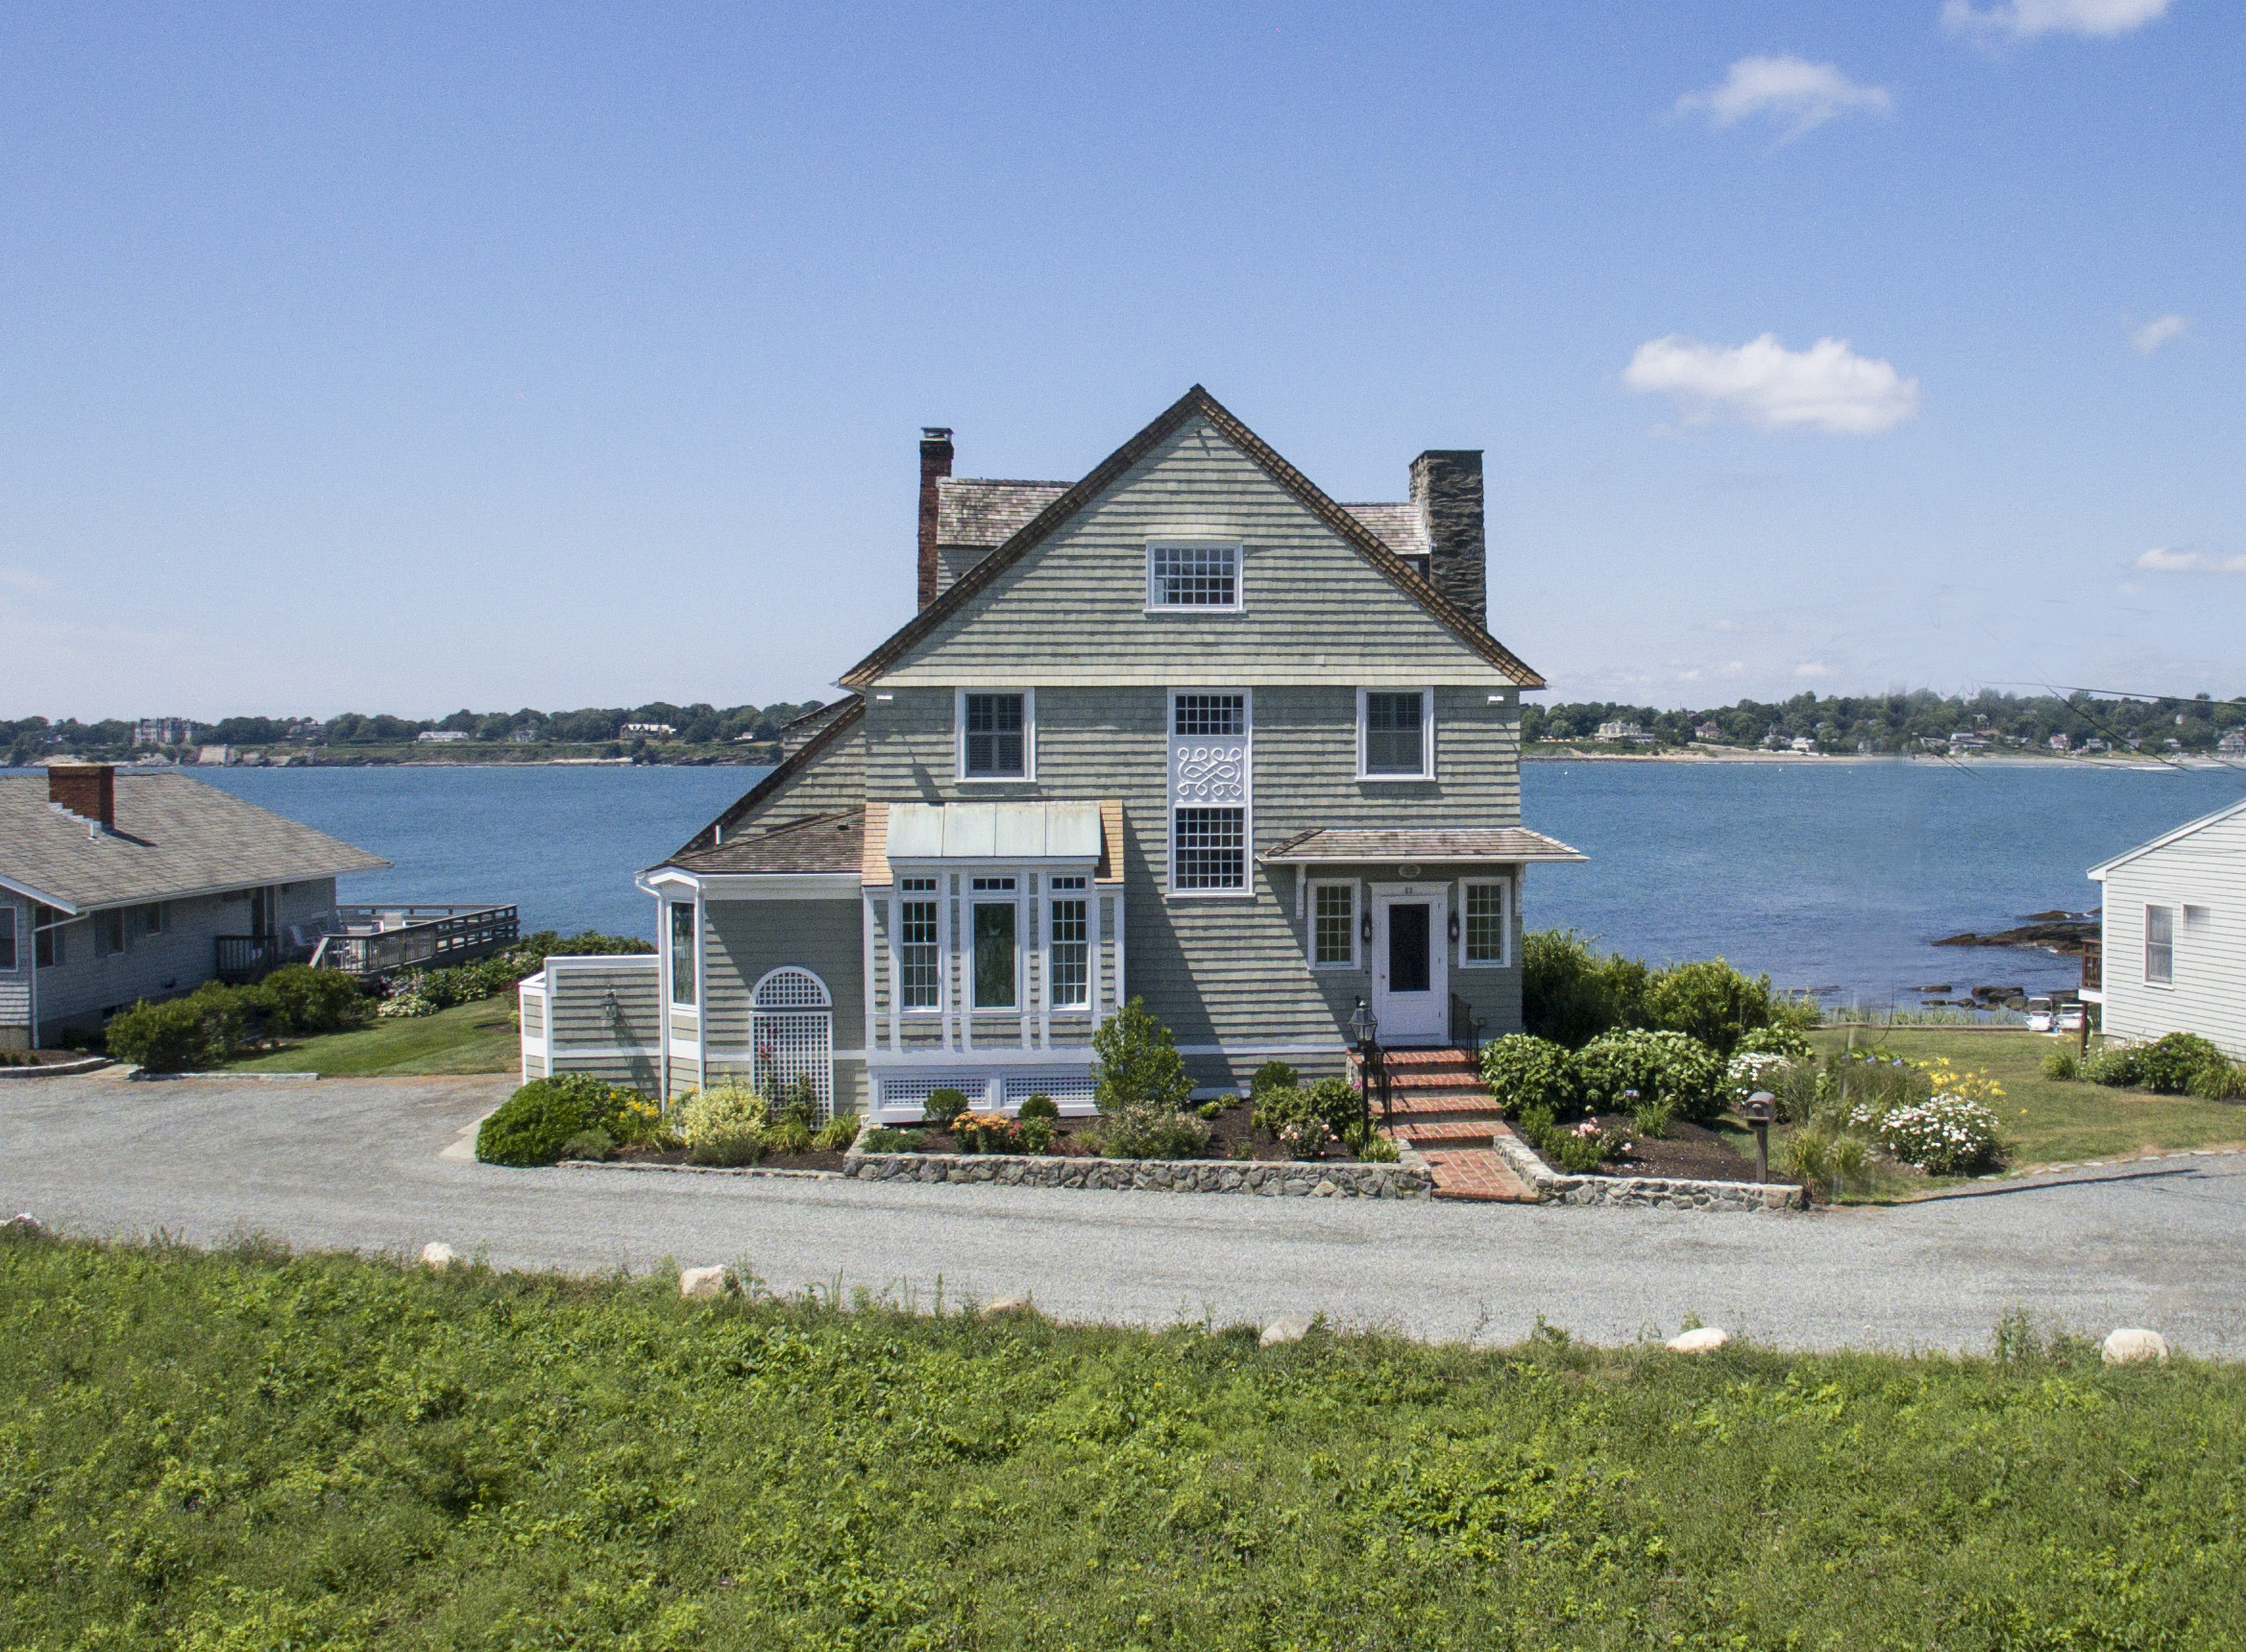 Single Family Home for Sale at 'Cliff Cottage' 63 Shore Drive Middletown, Rhode Island 02842 United States